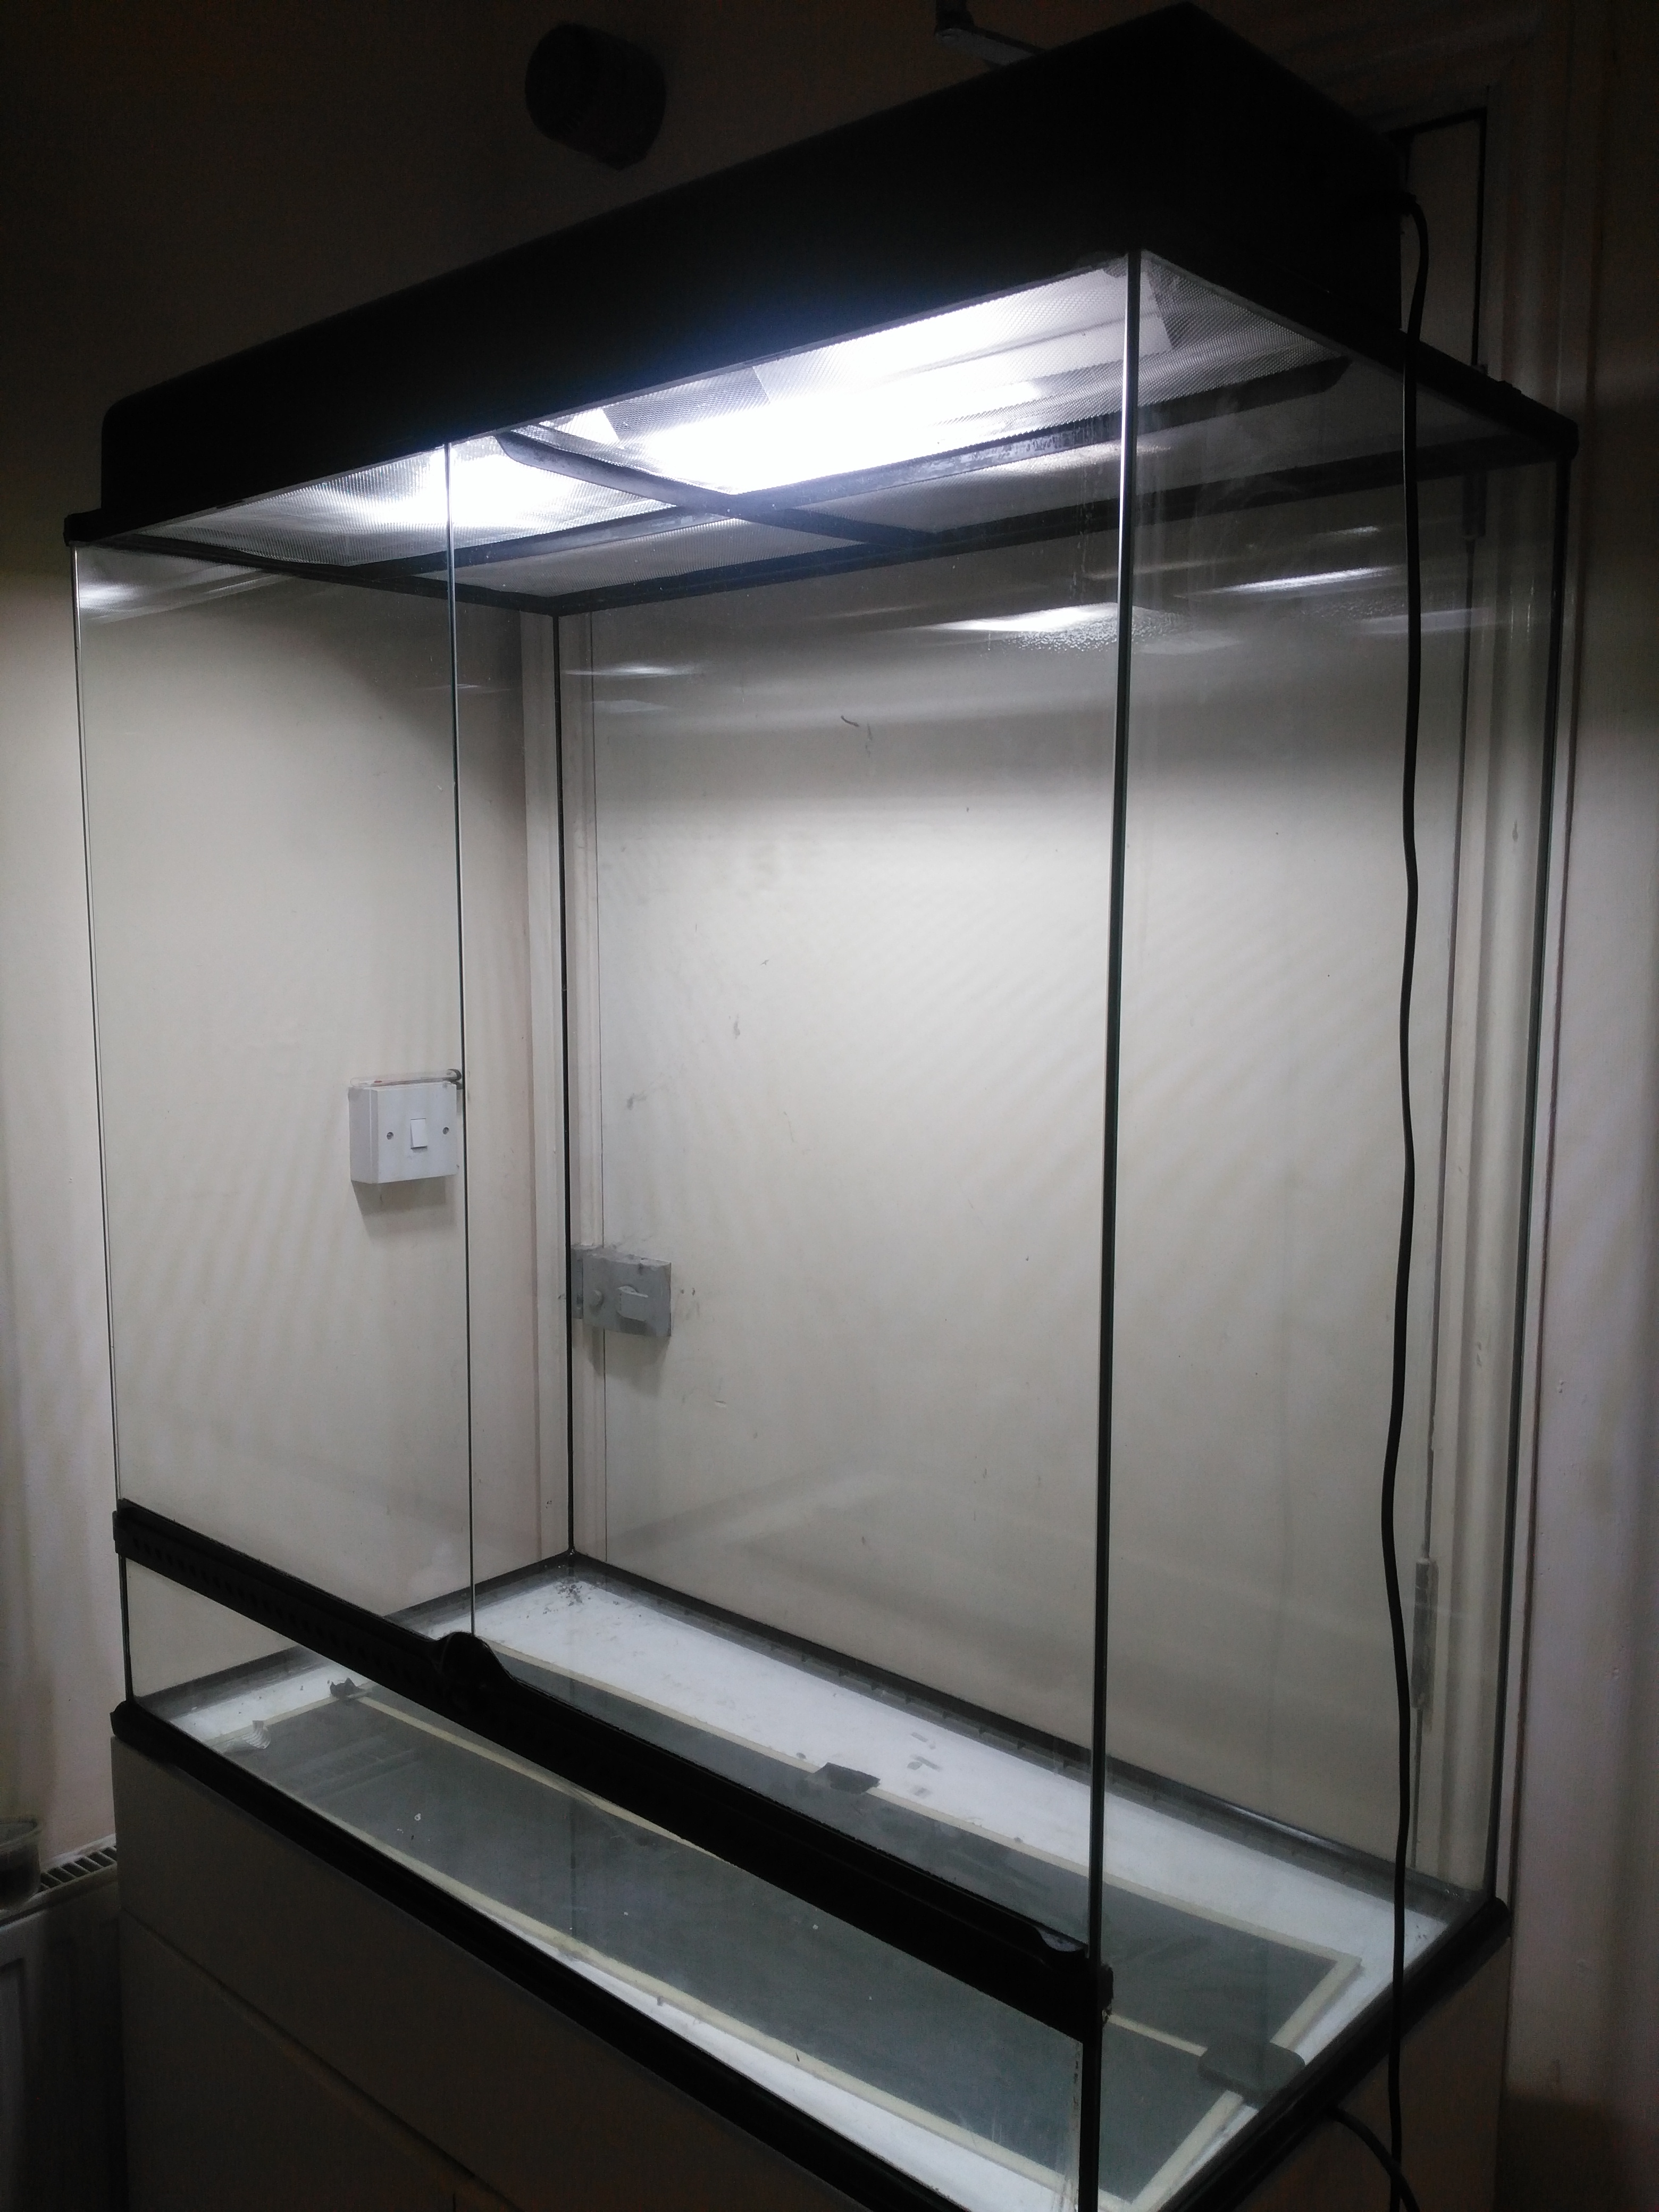 Exo Terra Glass Terrarium 90x45x90 cm with lighting canopy and large heat mat-img_20180921_084842.jpg